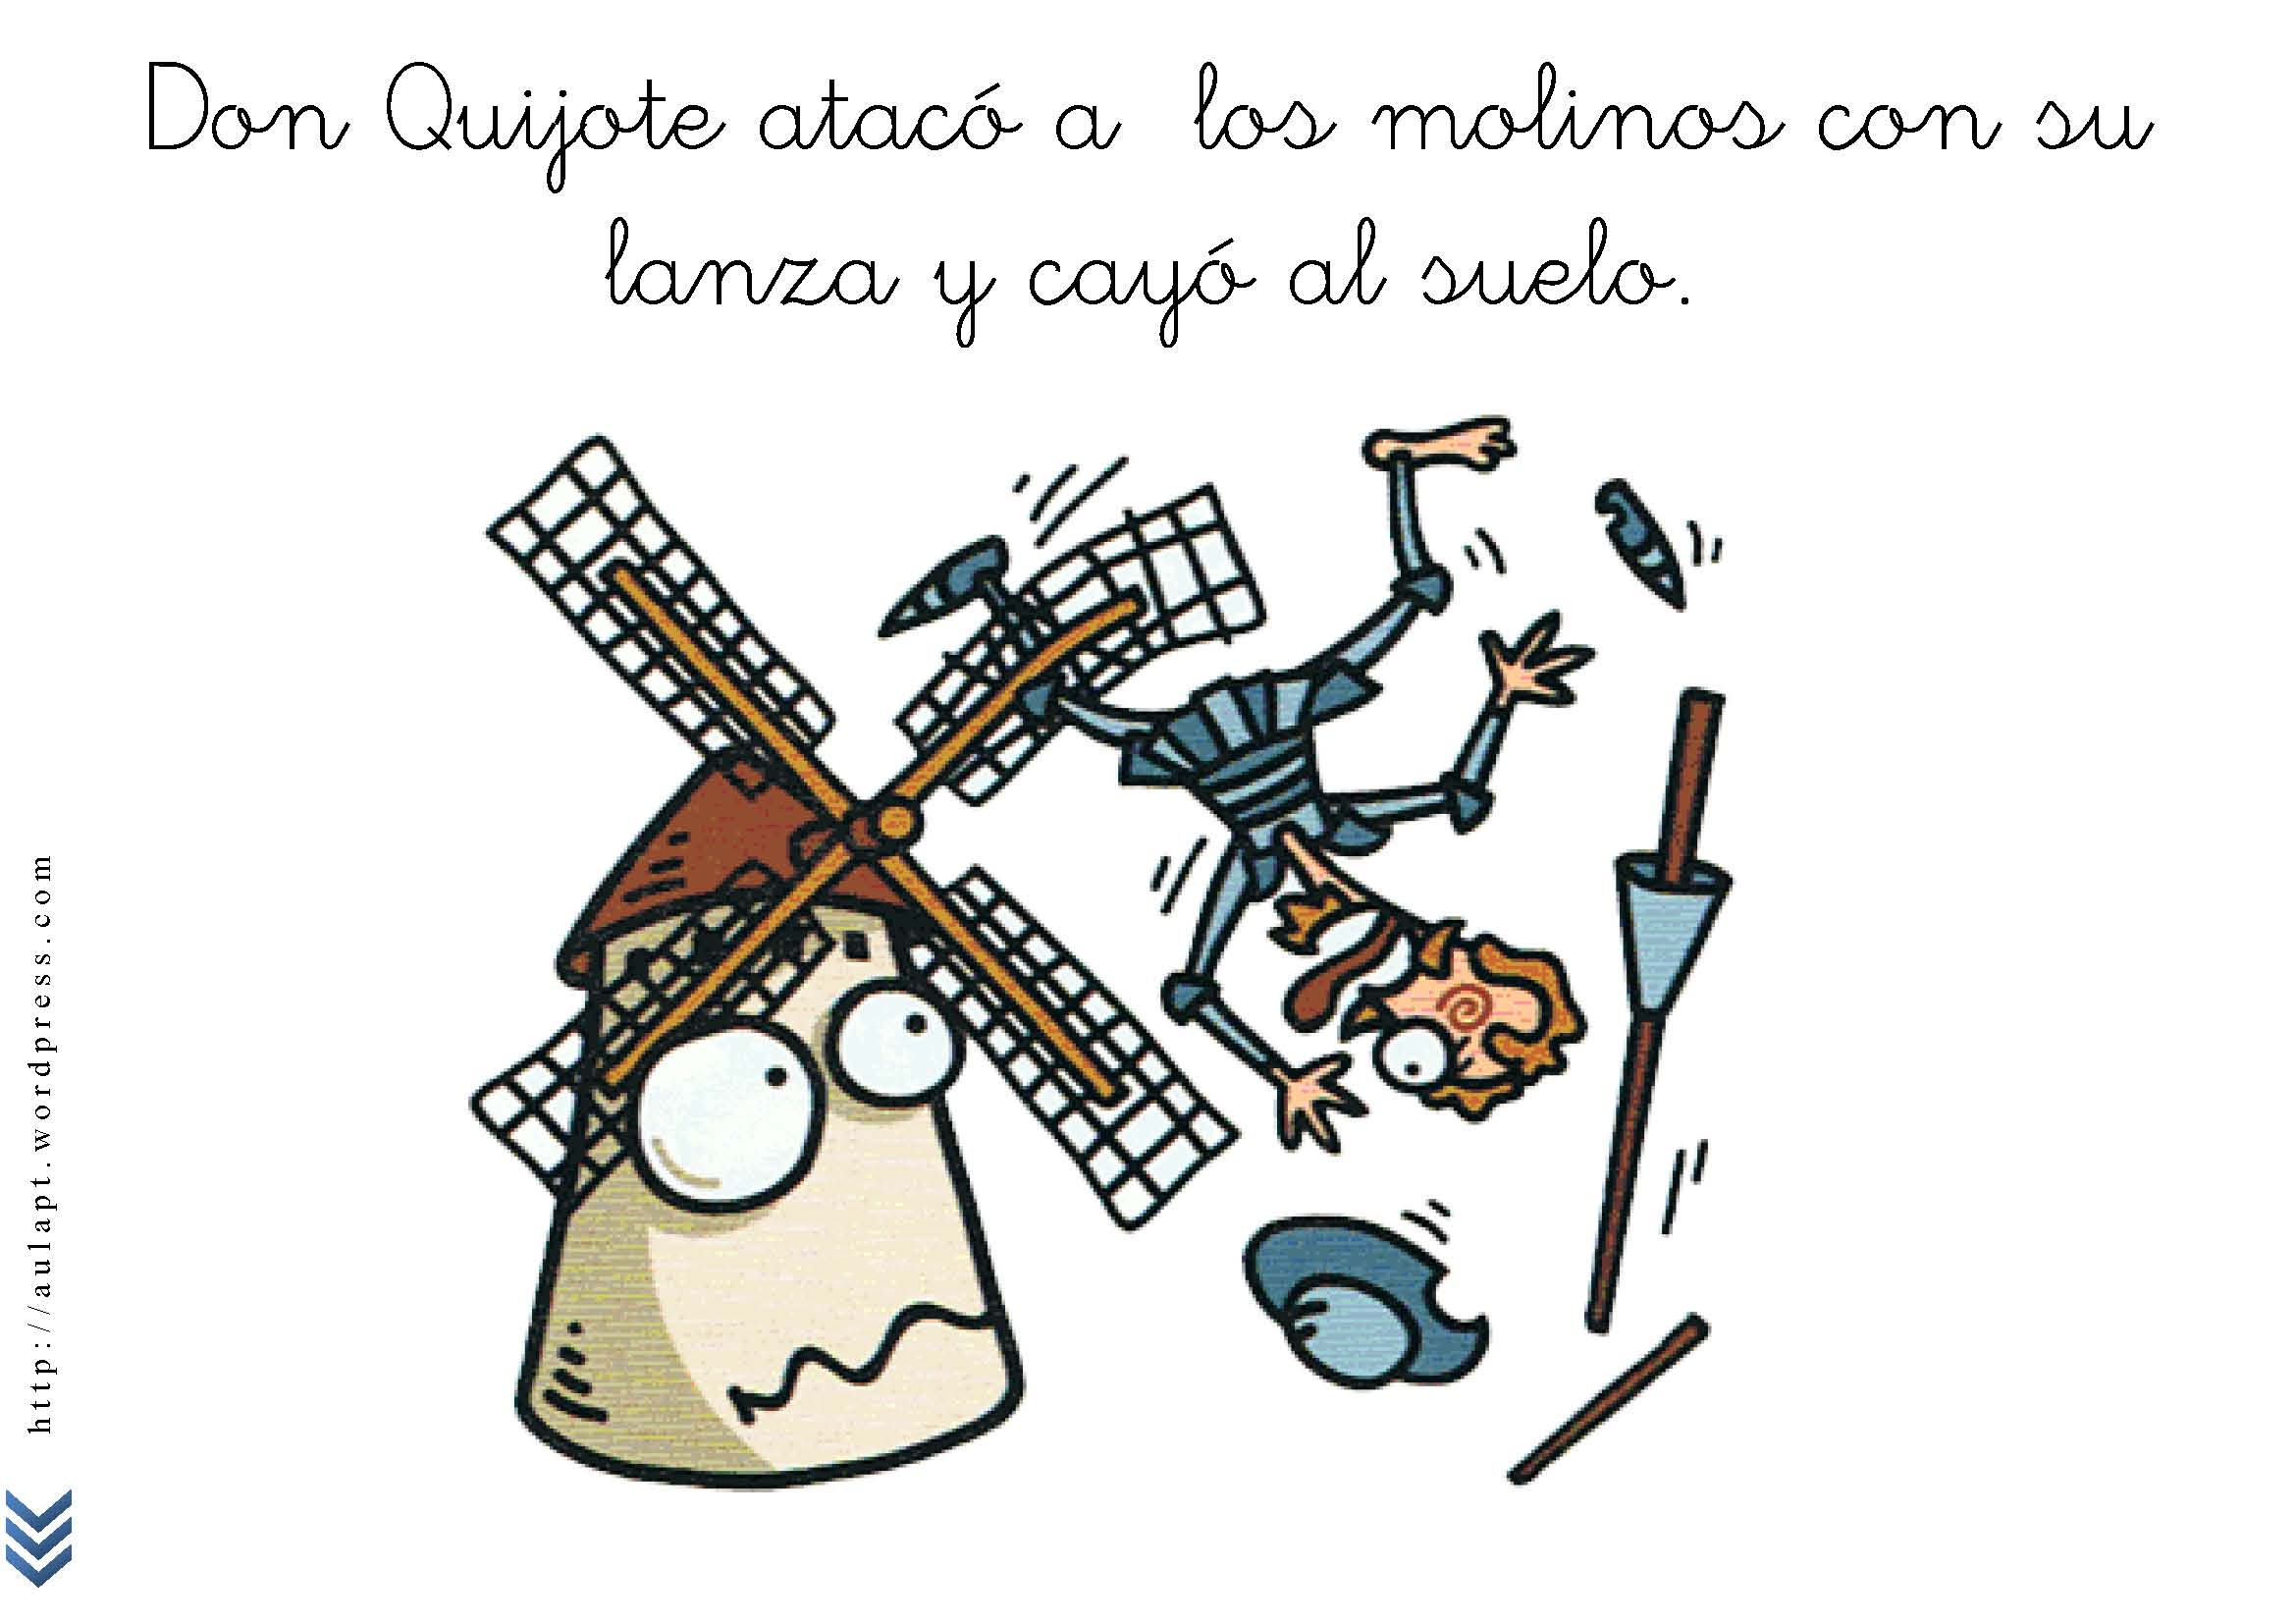 https://aulapt.files.wordpress.com/2009/08/don-quijote-y-los-molinos_page_41.jpg